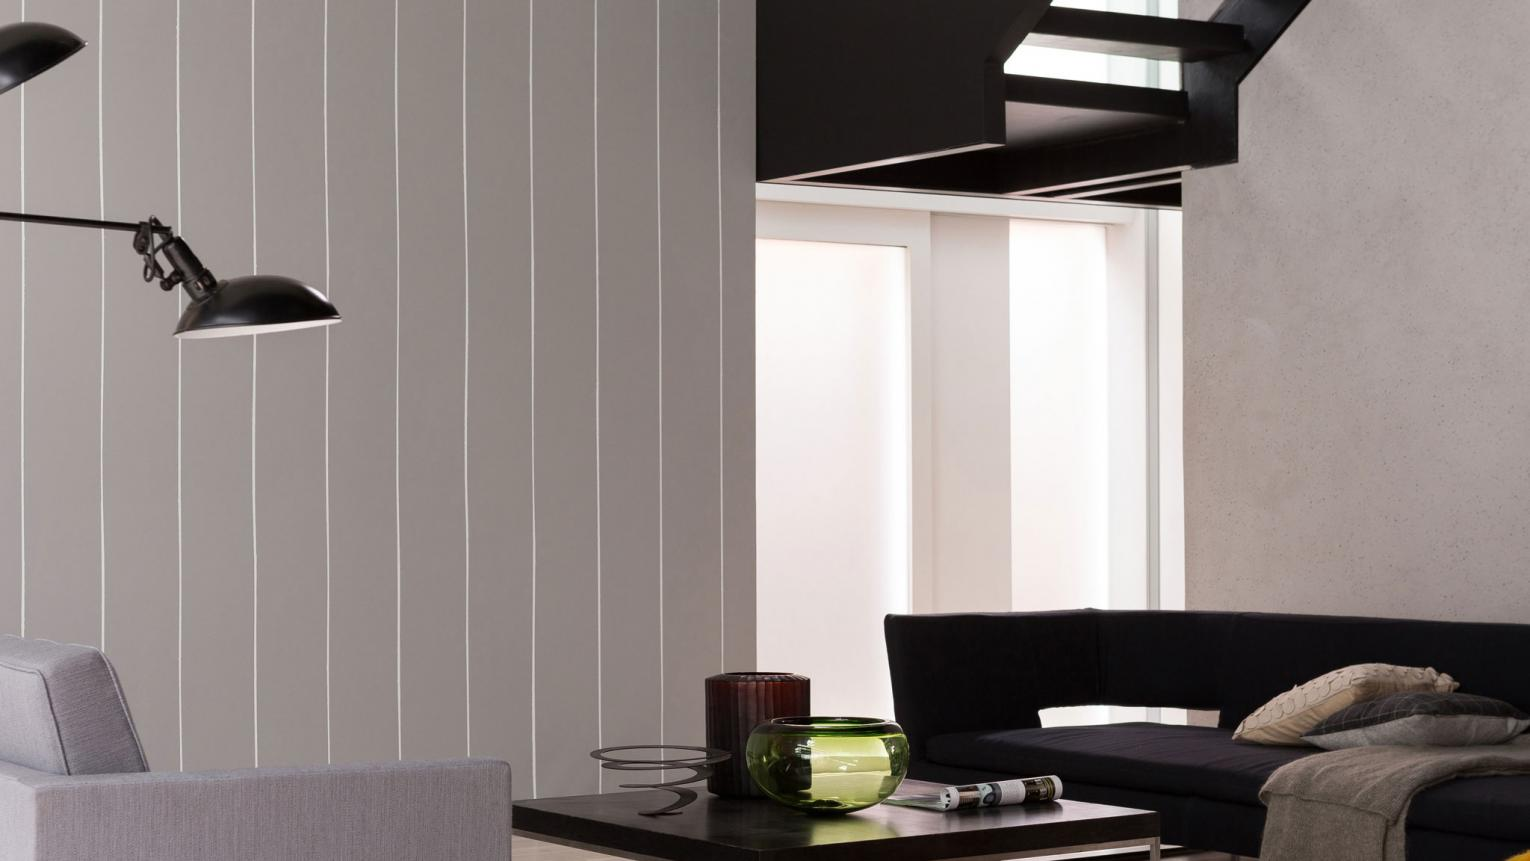 Add a touch of architectural interest to your home with a slick pinstripe paint effect.